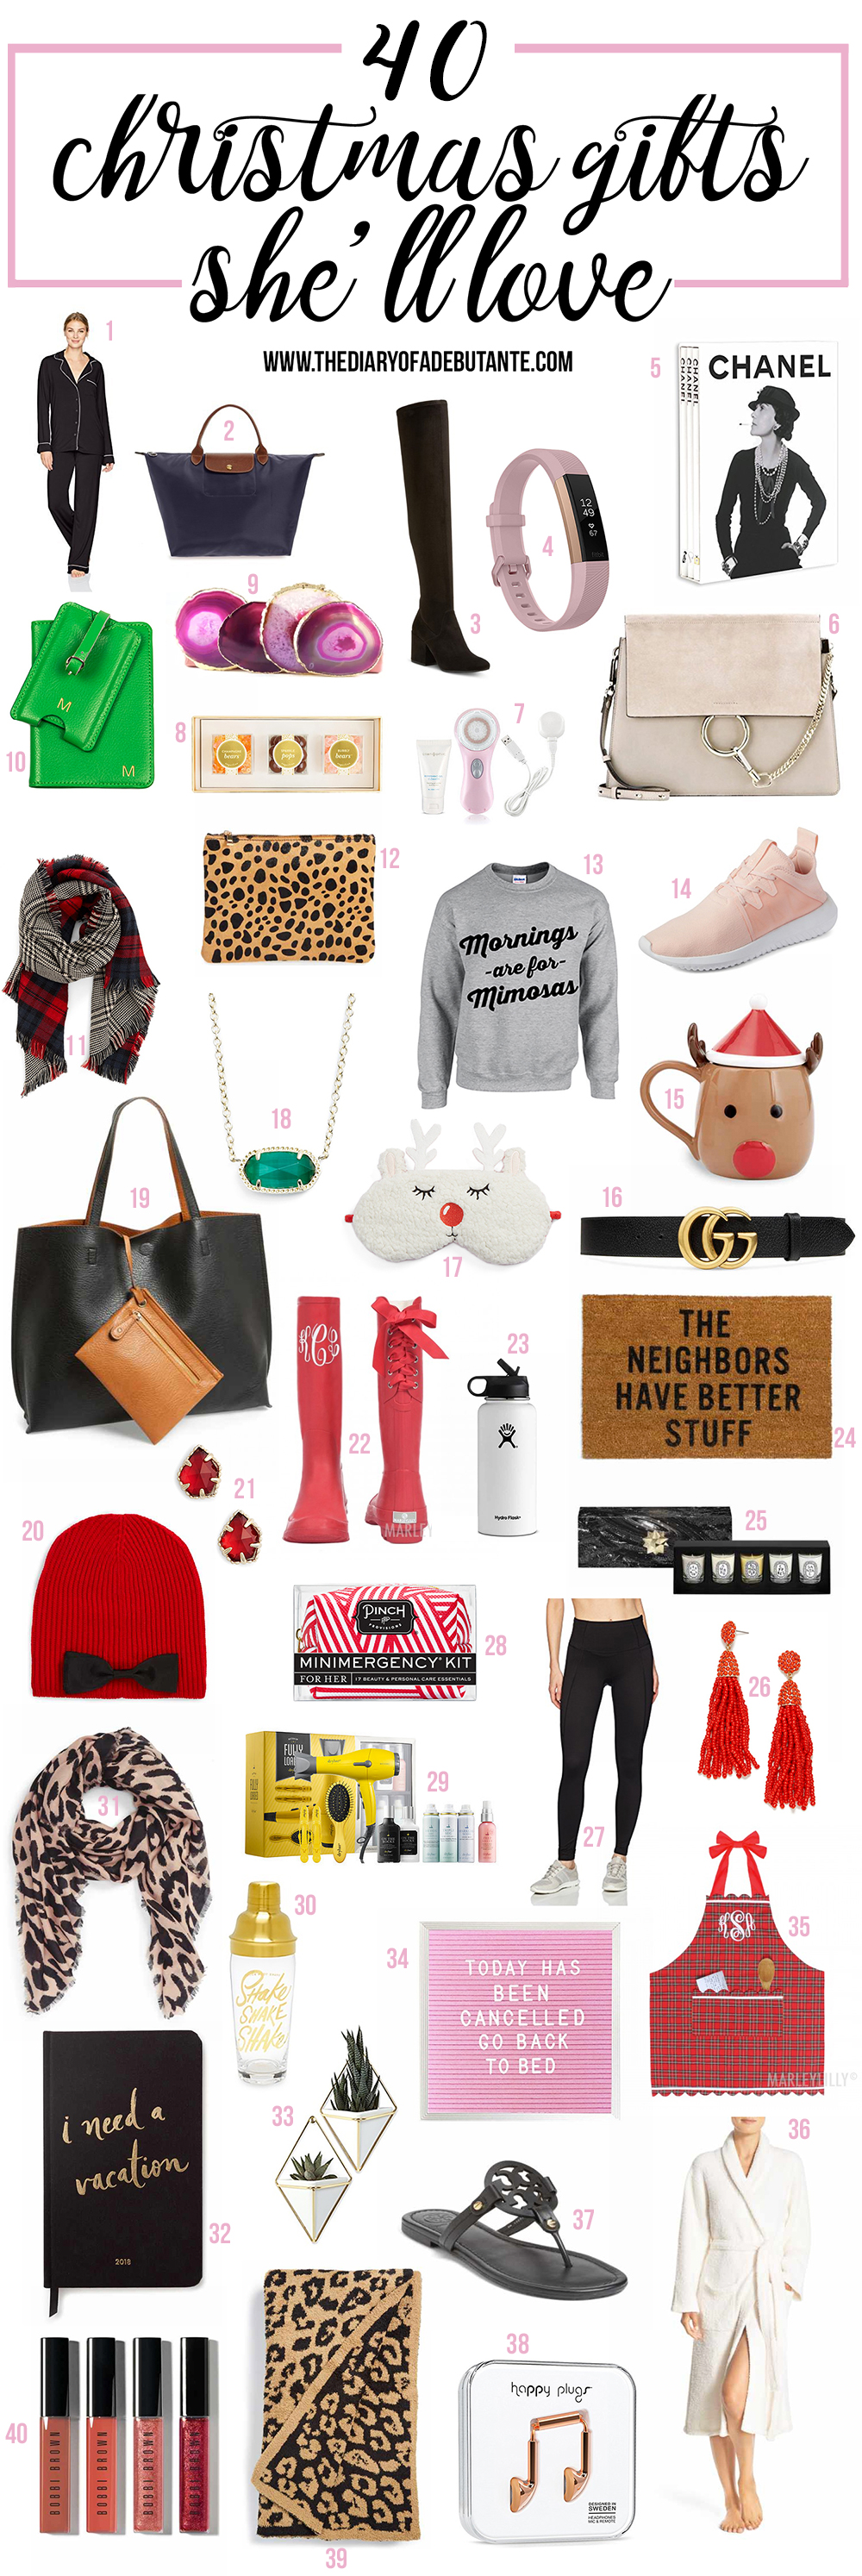 Cool Gift Ideas for Girlfriend, Mom, or BFF this Holiday Season